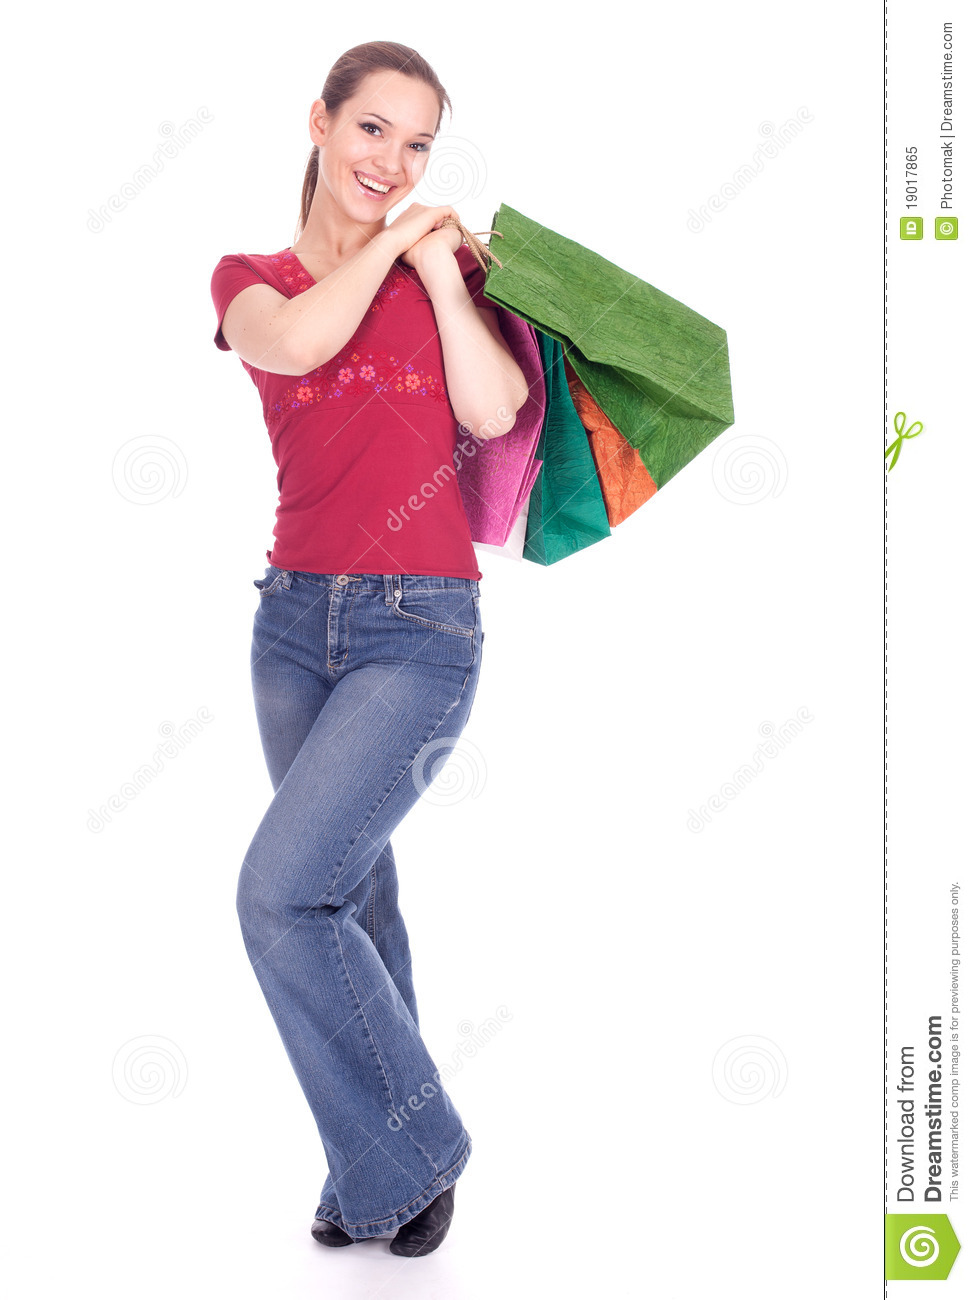 Simple Shopping Woman In Joy Running Holding Bag Royalty Free Stock Image - Image 13616206